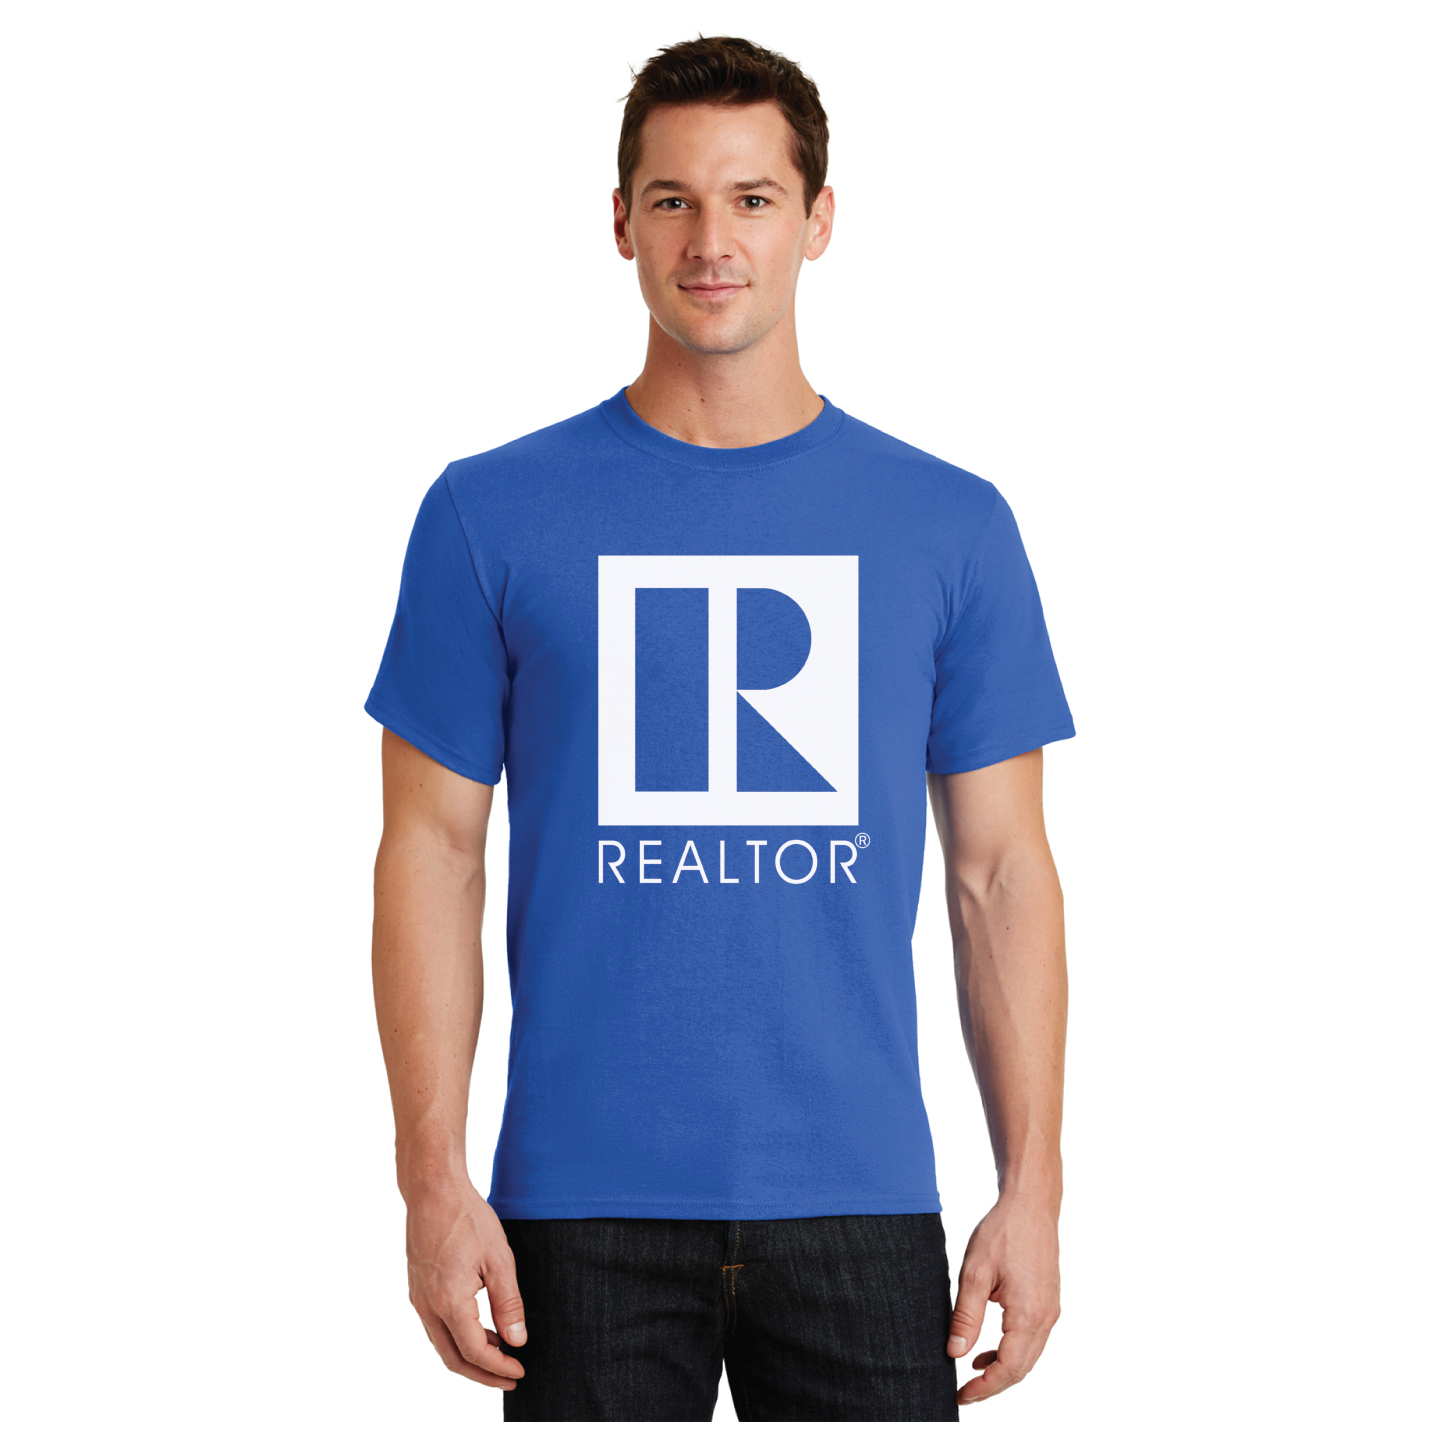 Royal Blue Value Tee Shirt Tees,T-shirt,Tee,Casual,Values,Tees